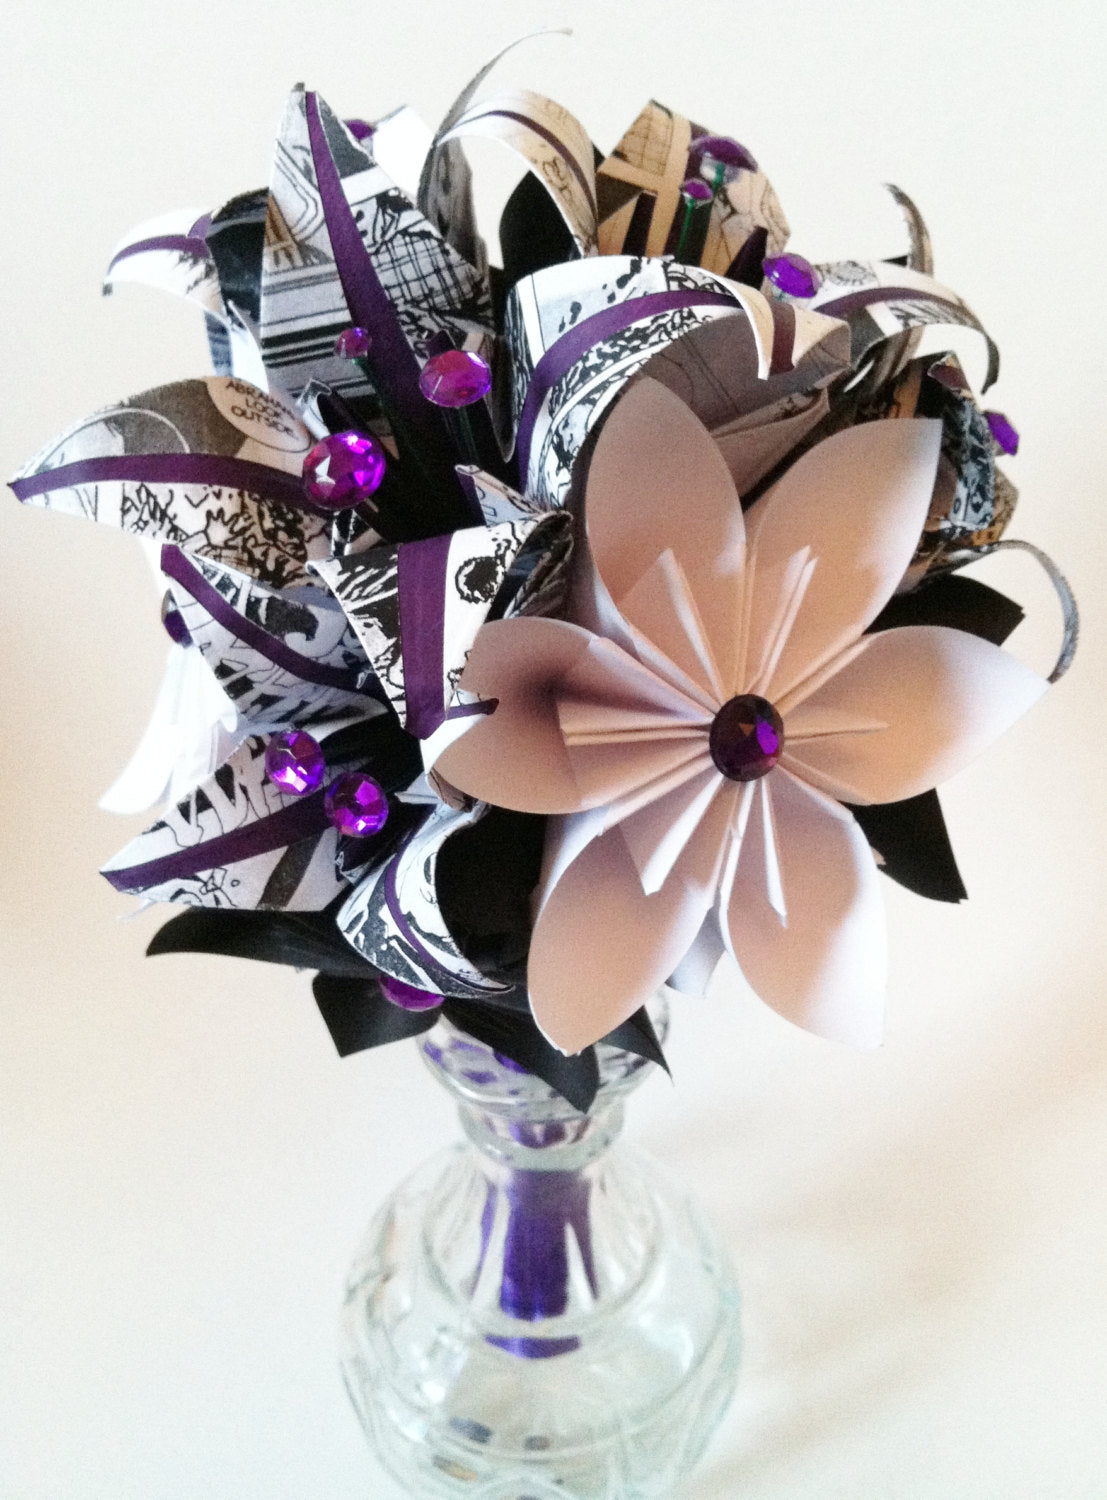 Bridesmaid Flowers & Lilies Paper Bouquet- 7 inch, 15 flowers, one of a kind, custom wedding, origami,  paper flowers